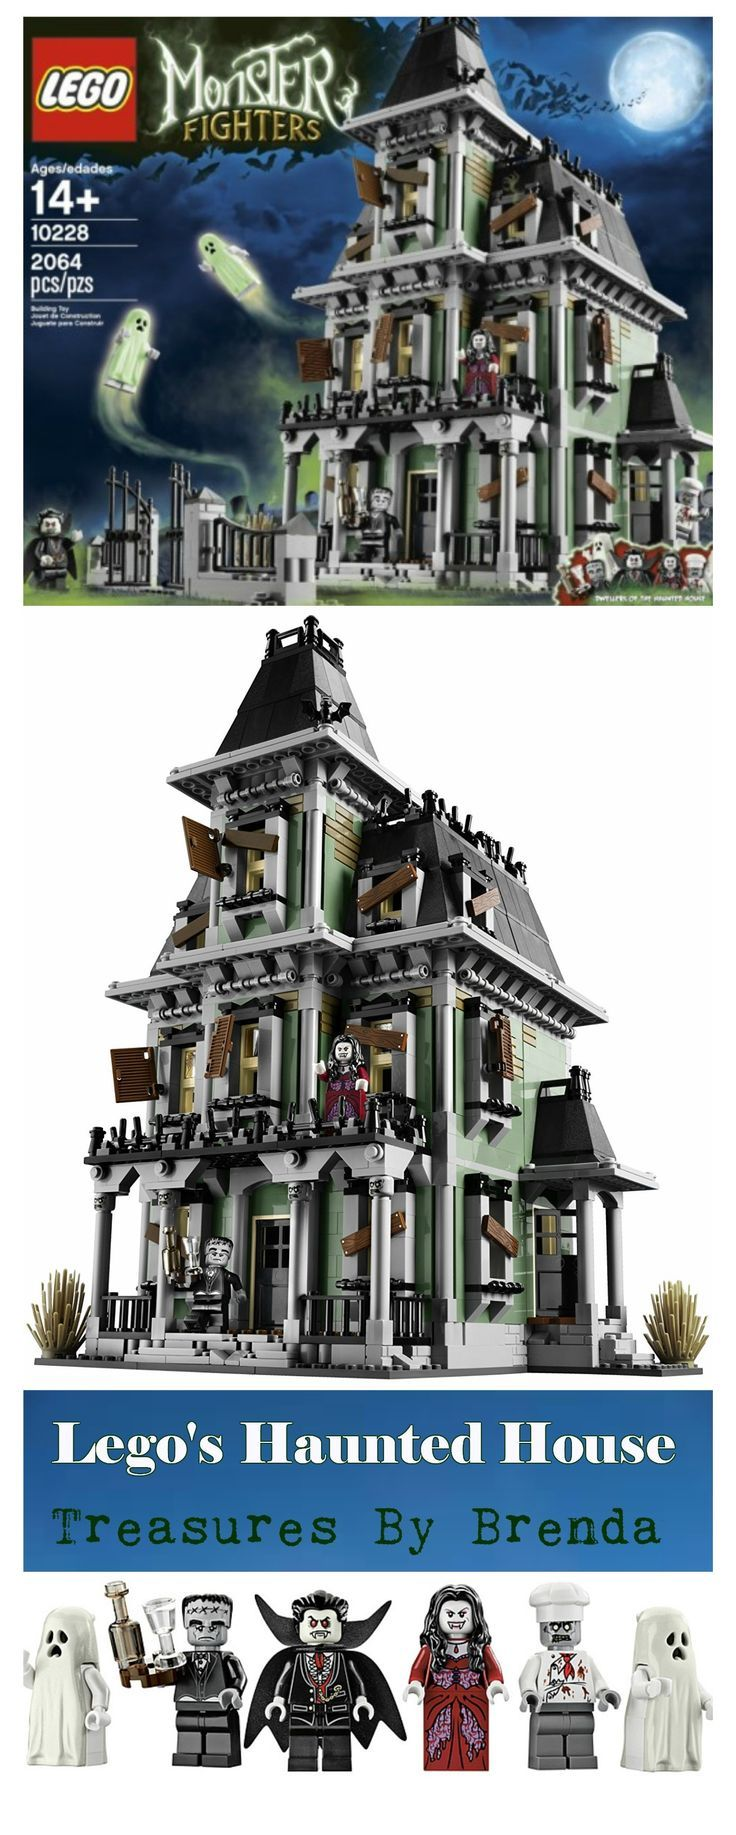 LOVE Lego's haunted house set.  It's perfect for Halloween, LOL.